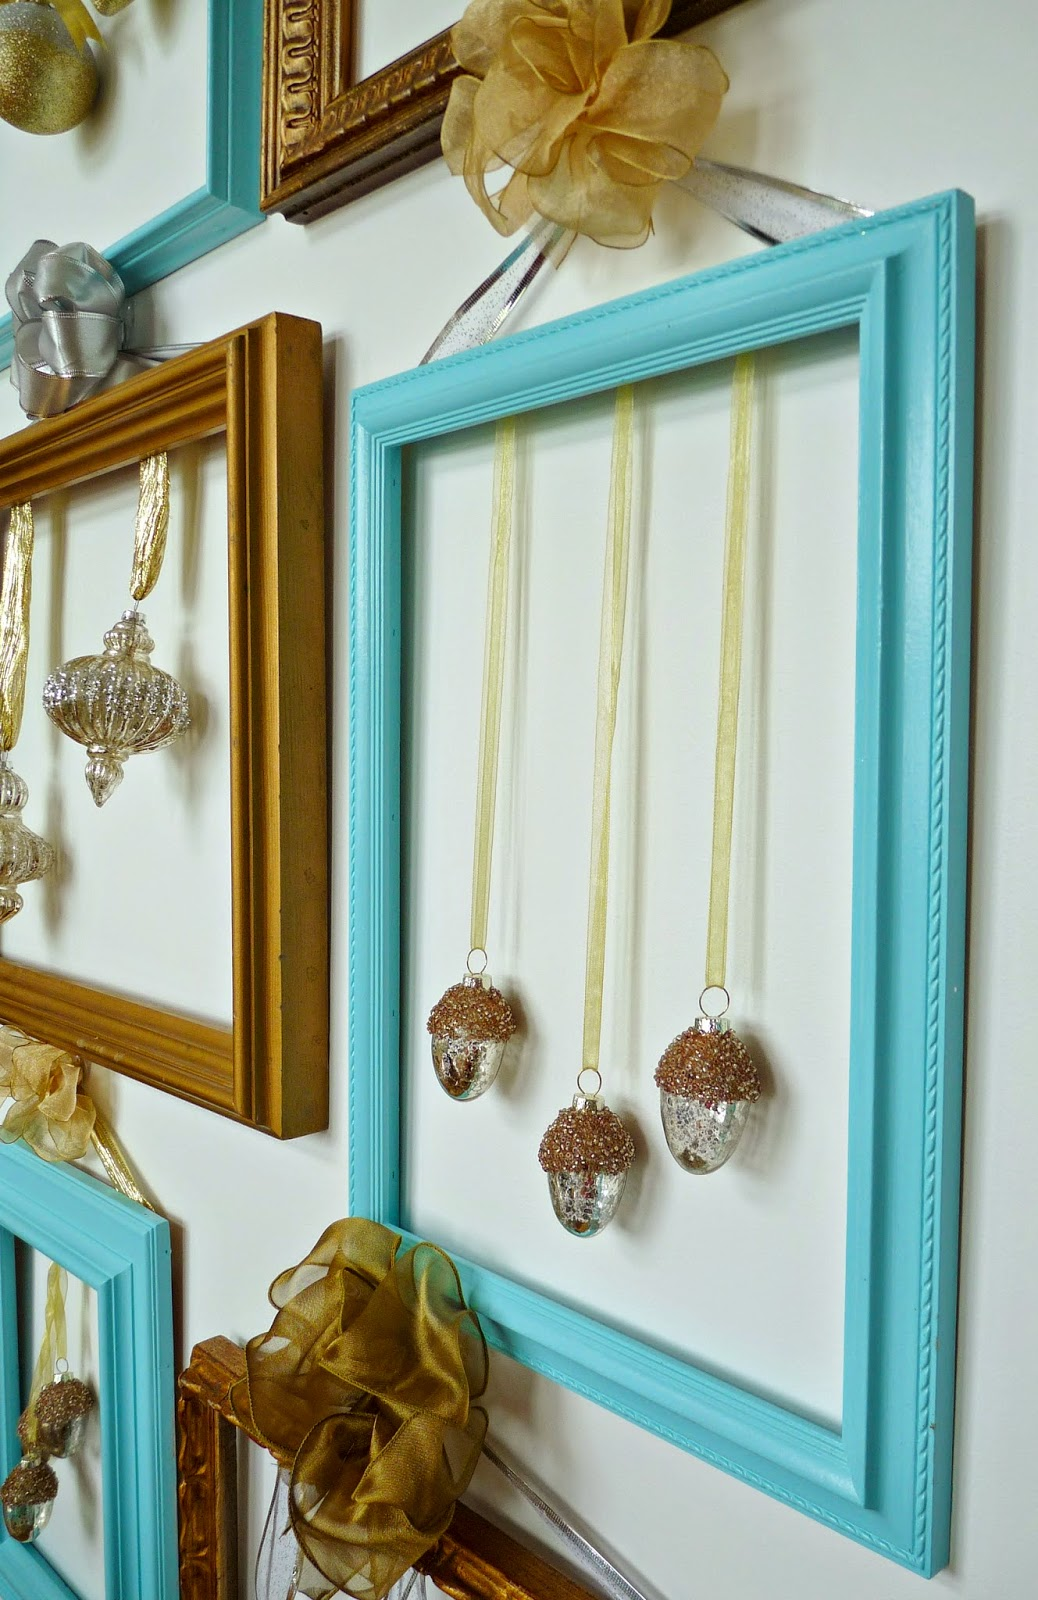 Christmas ornaments displayed on frame